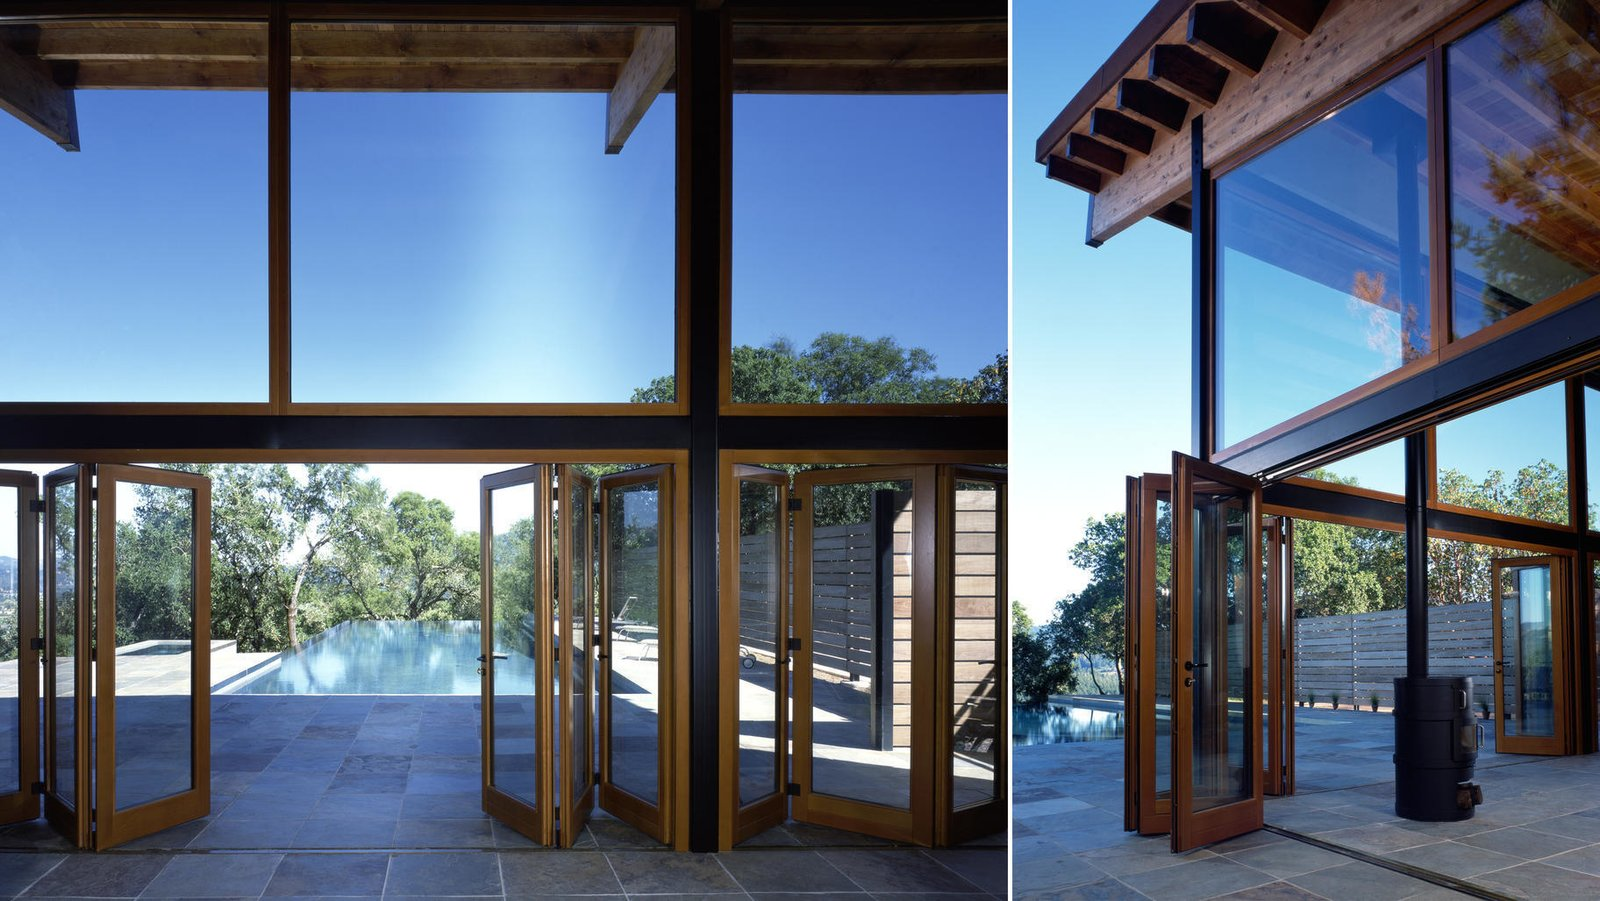 #pool #poolhouse #calistoga #exterior #interior #smallspaces #cantileveredroof #cantilevered #roof #glass #windows  Barnes Pool House